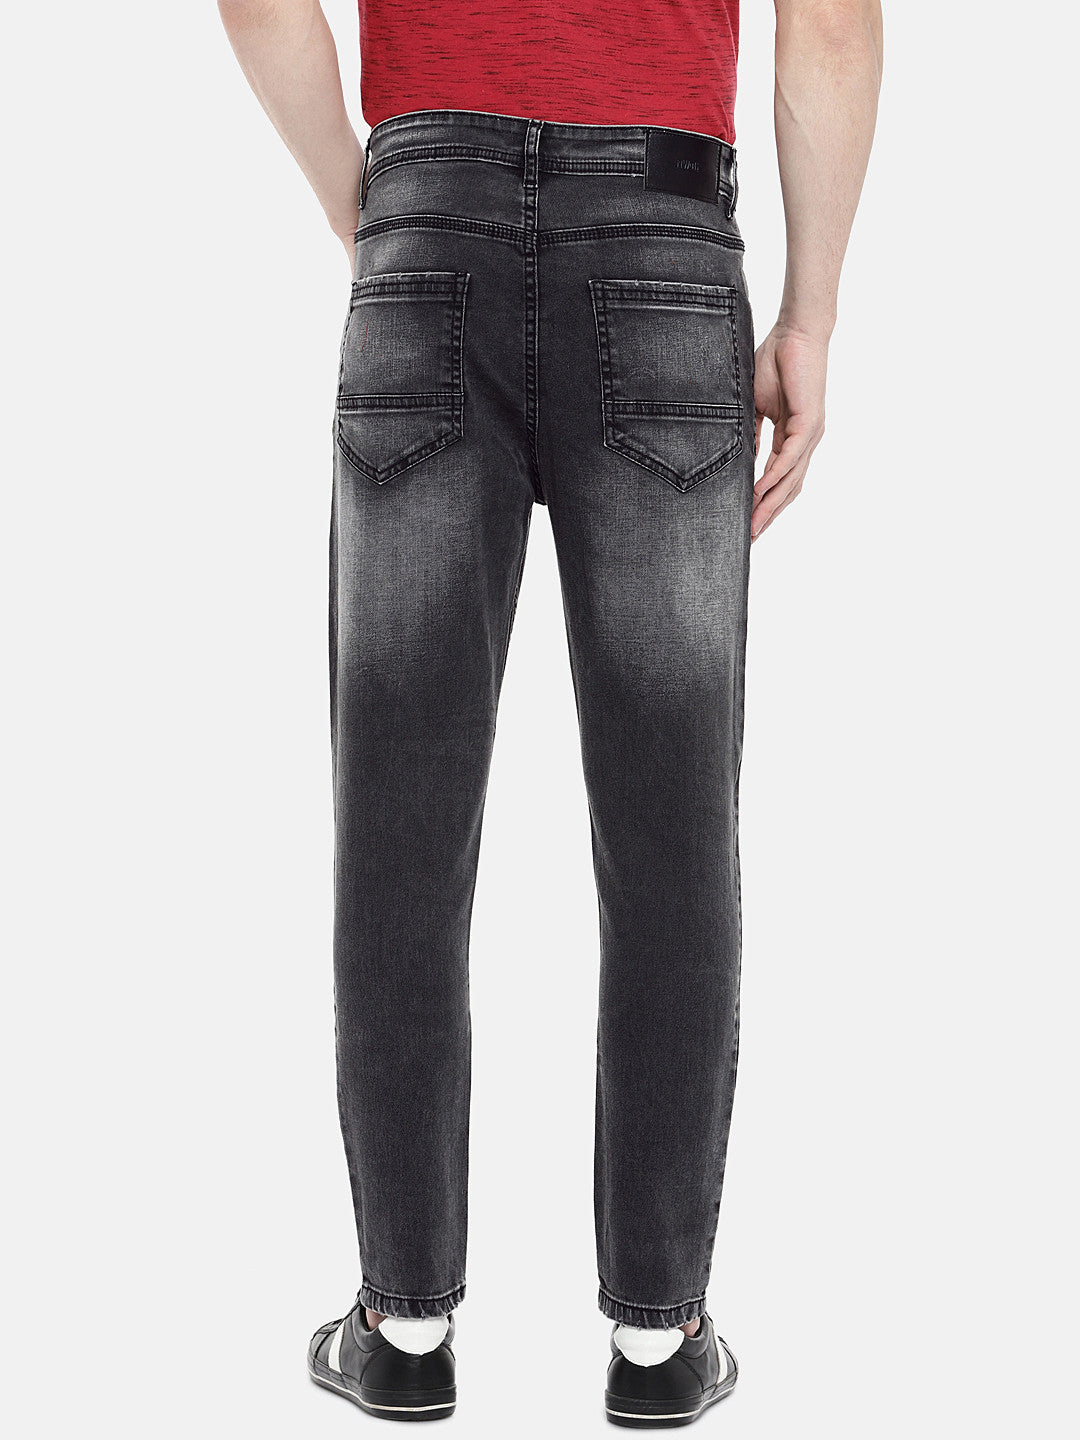 Charcoal Grey Regular Fit Mid-Rise Low Distress Jeans-3